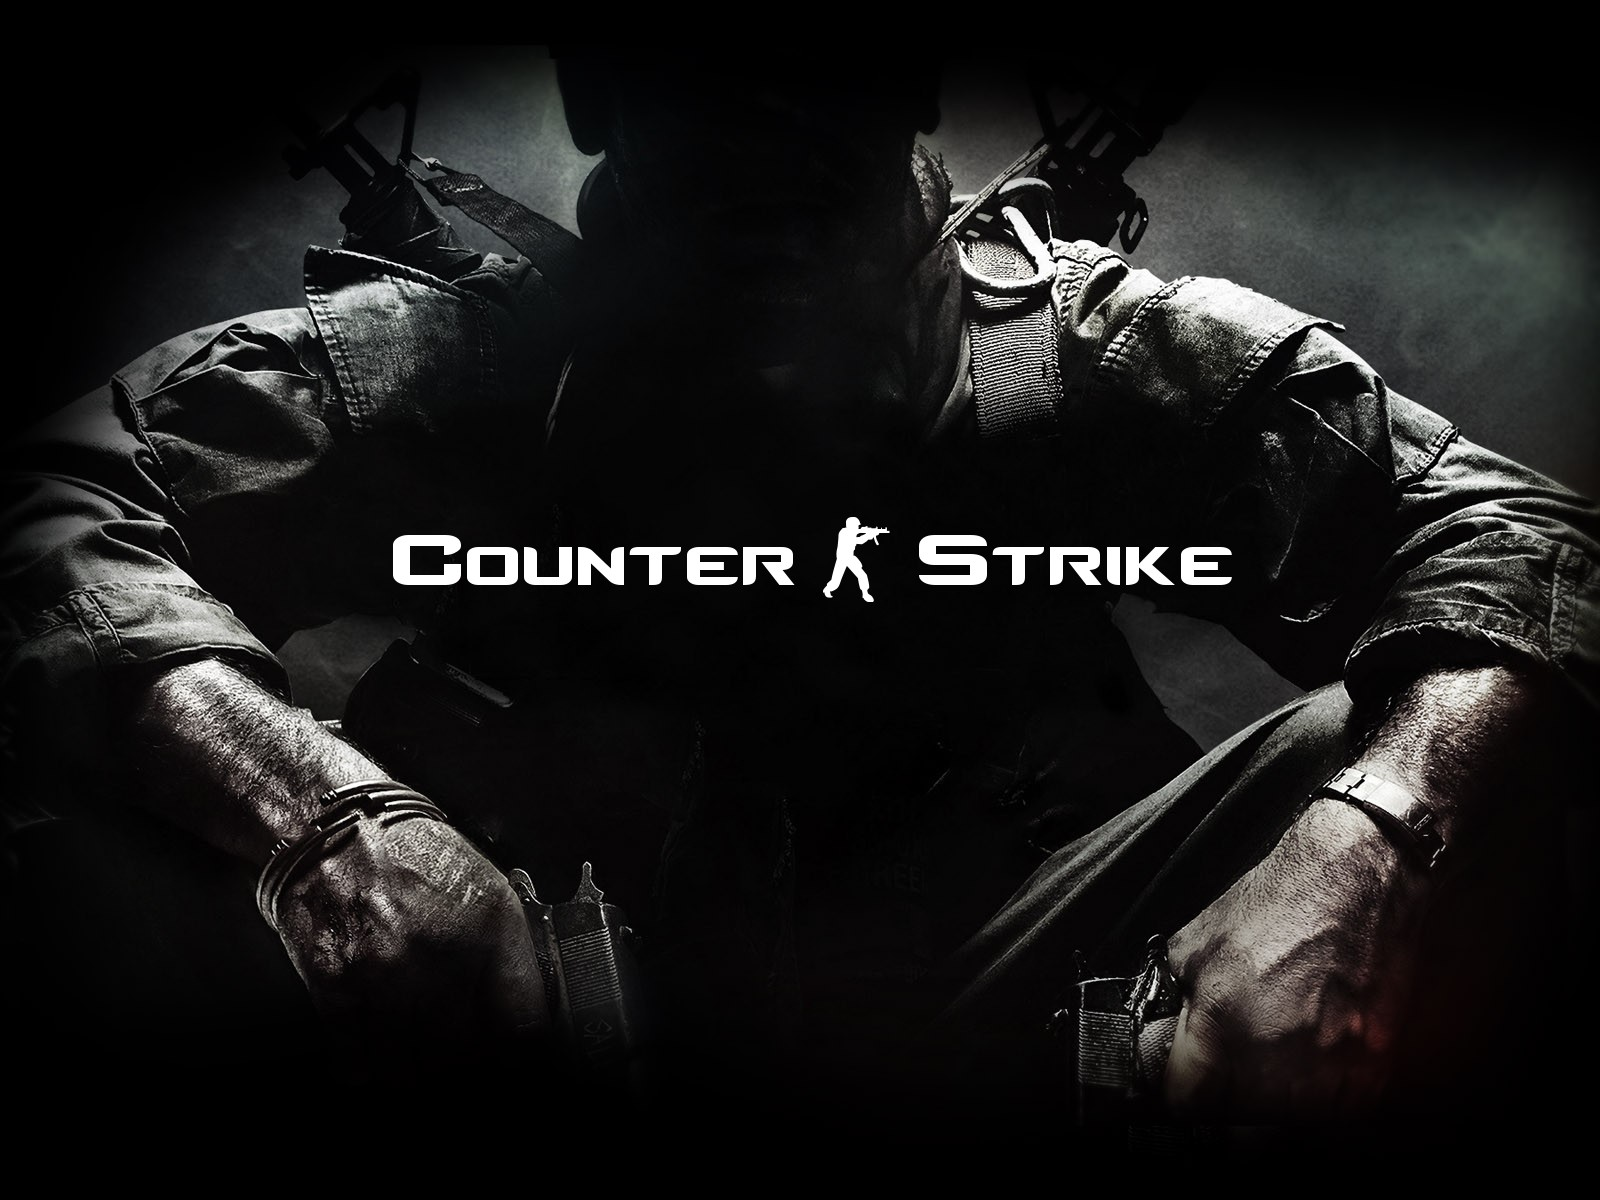 WallpaperfreekS Counter Strike Wallppers 1024X768 1600x1200